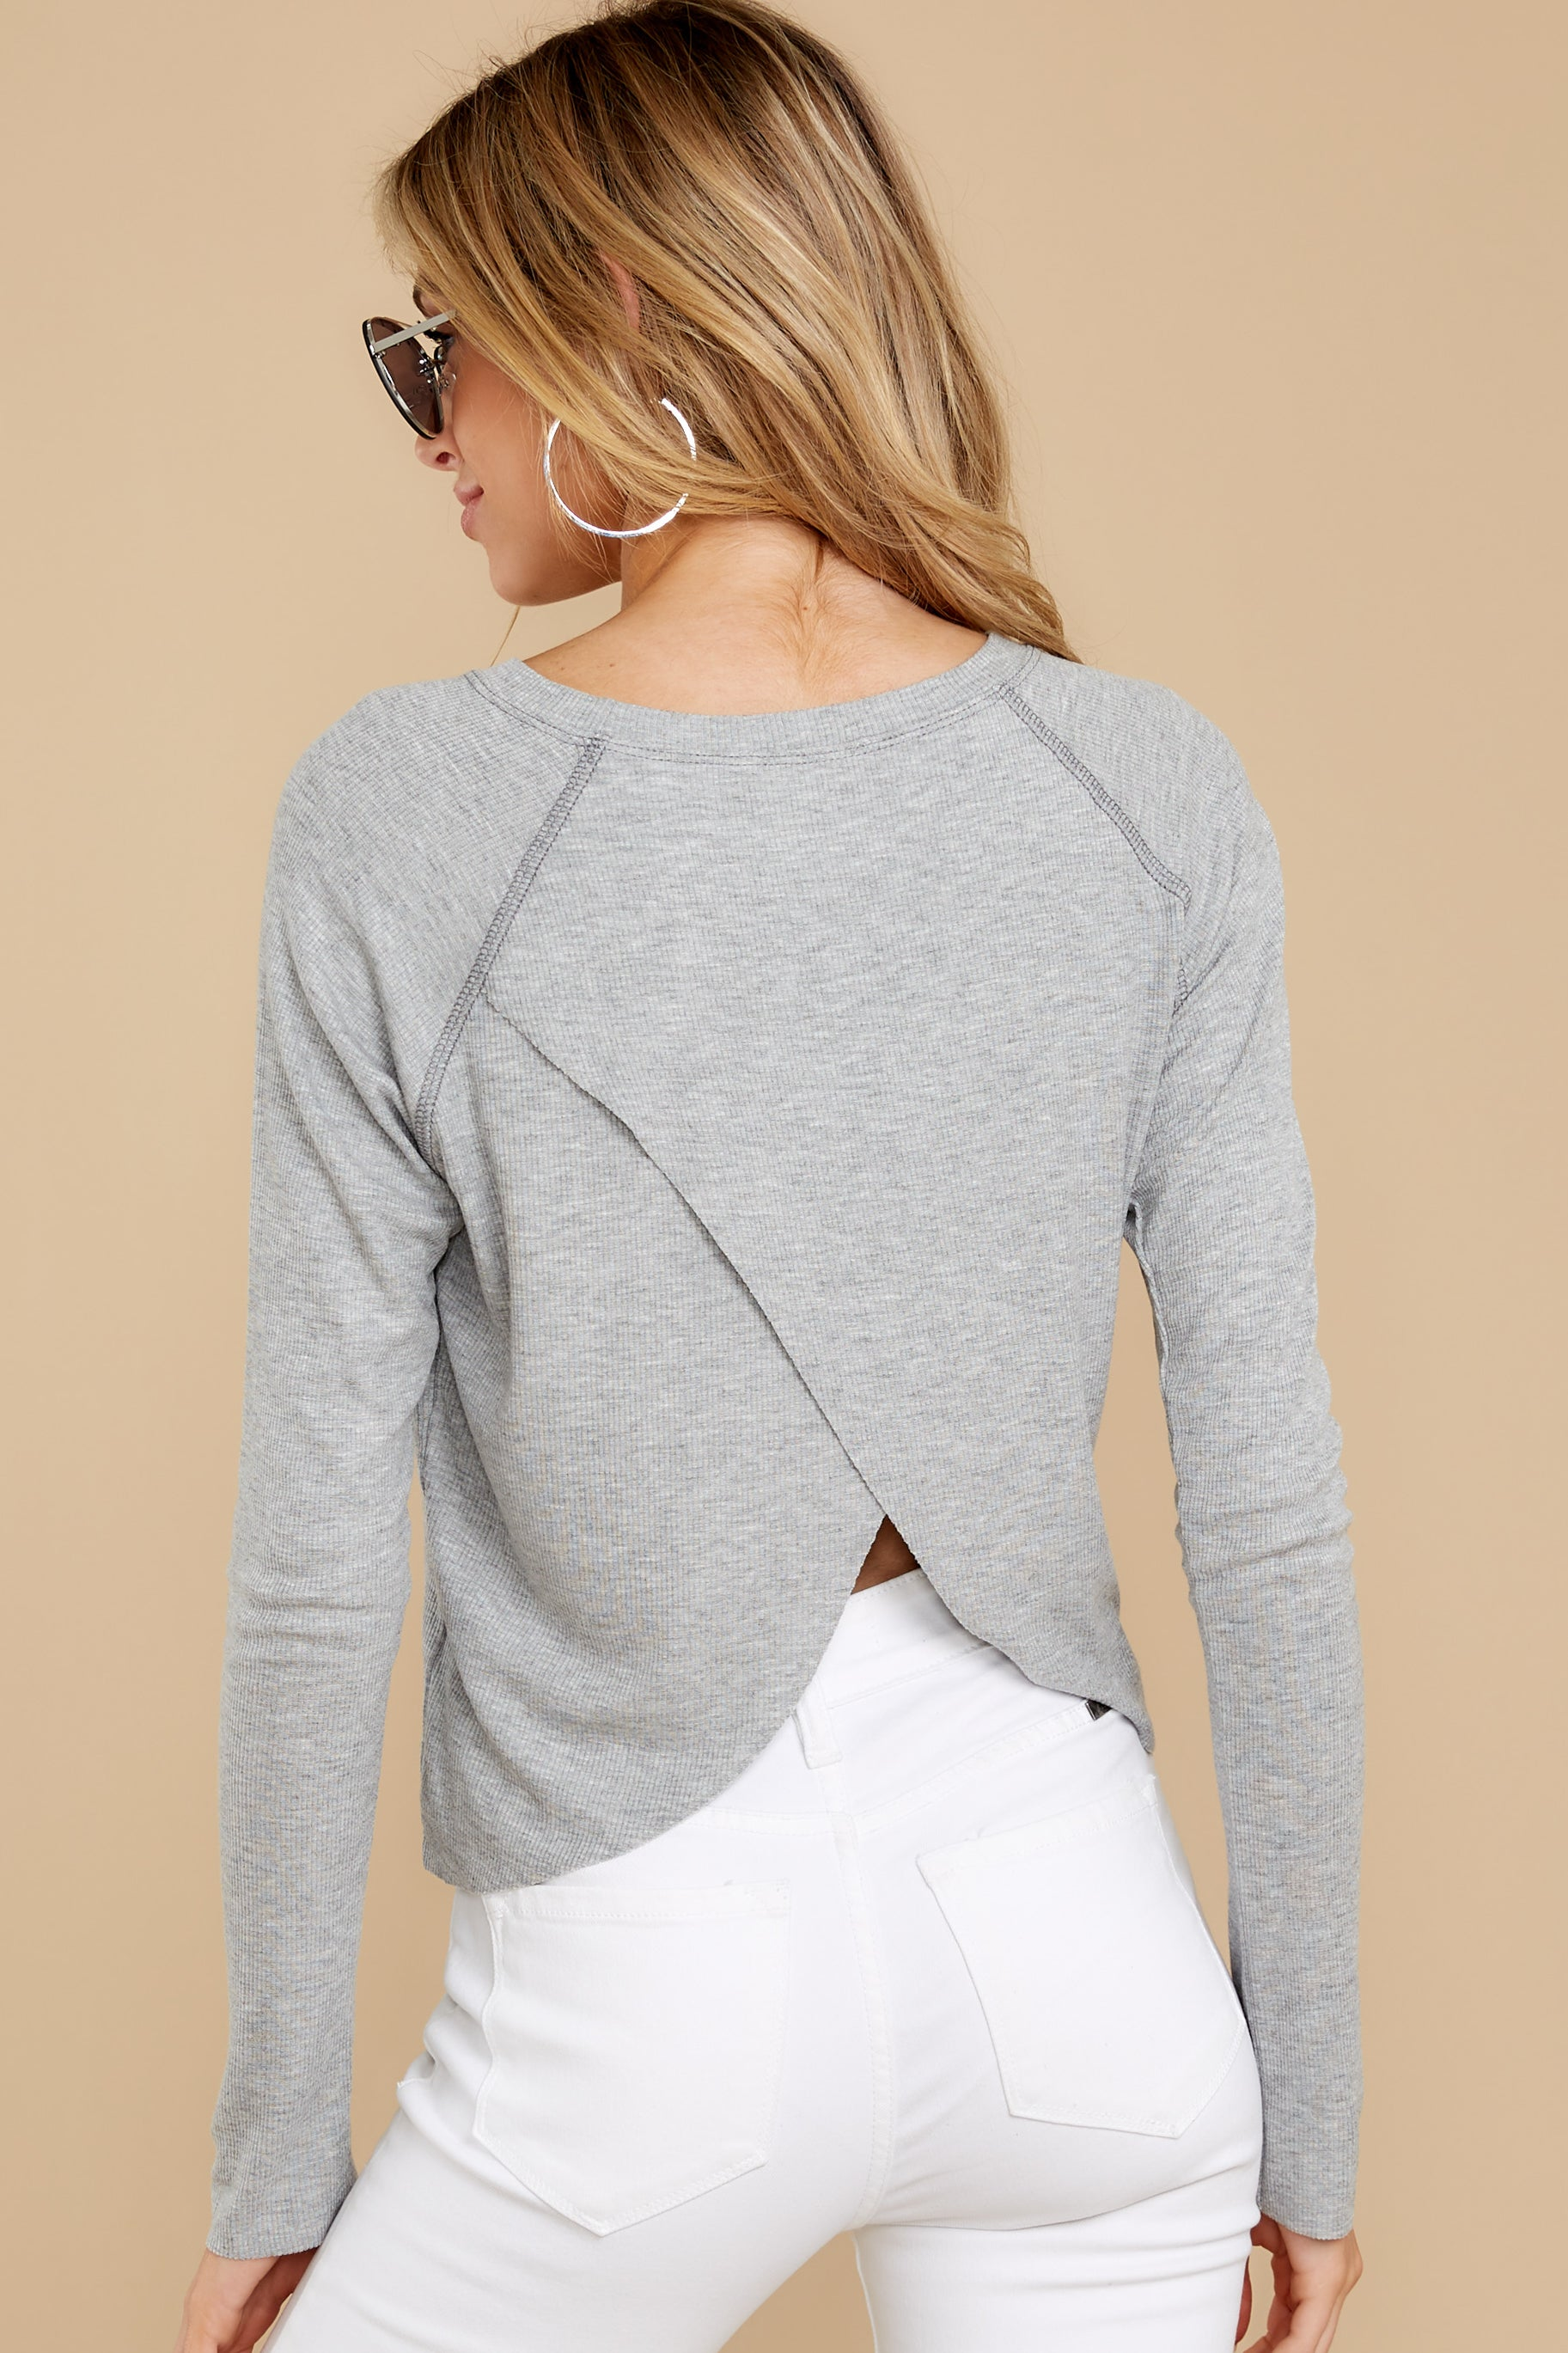 9 No Looking Back Grey Top at reddressboutique.com